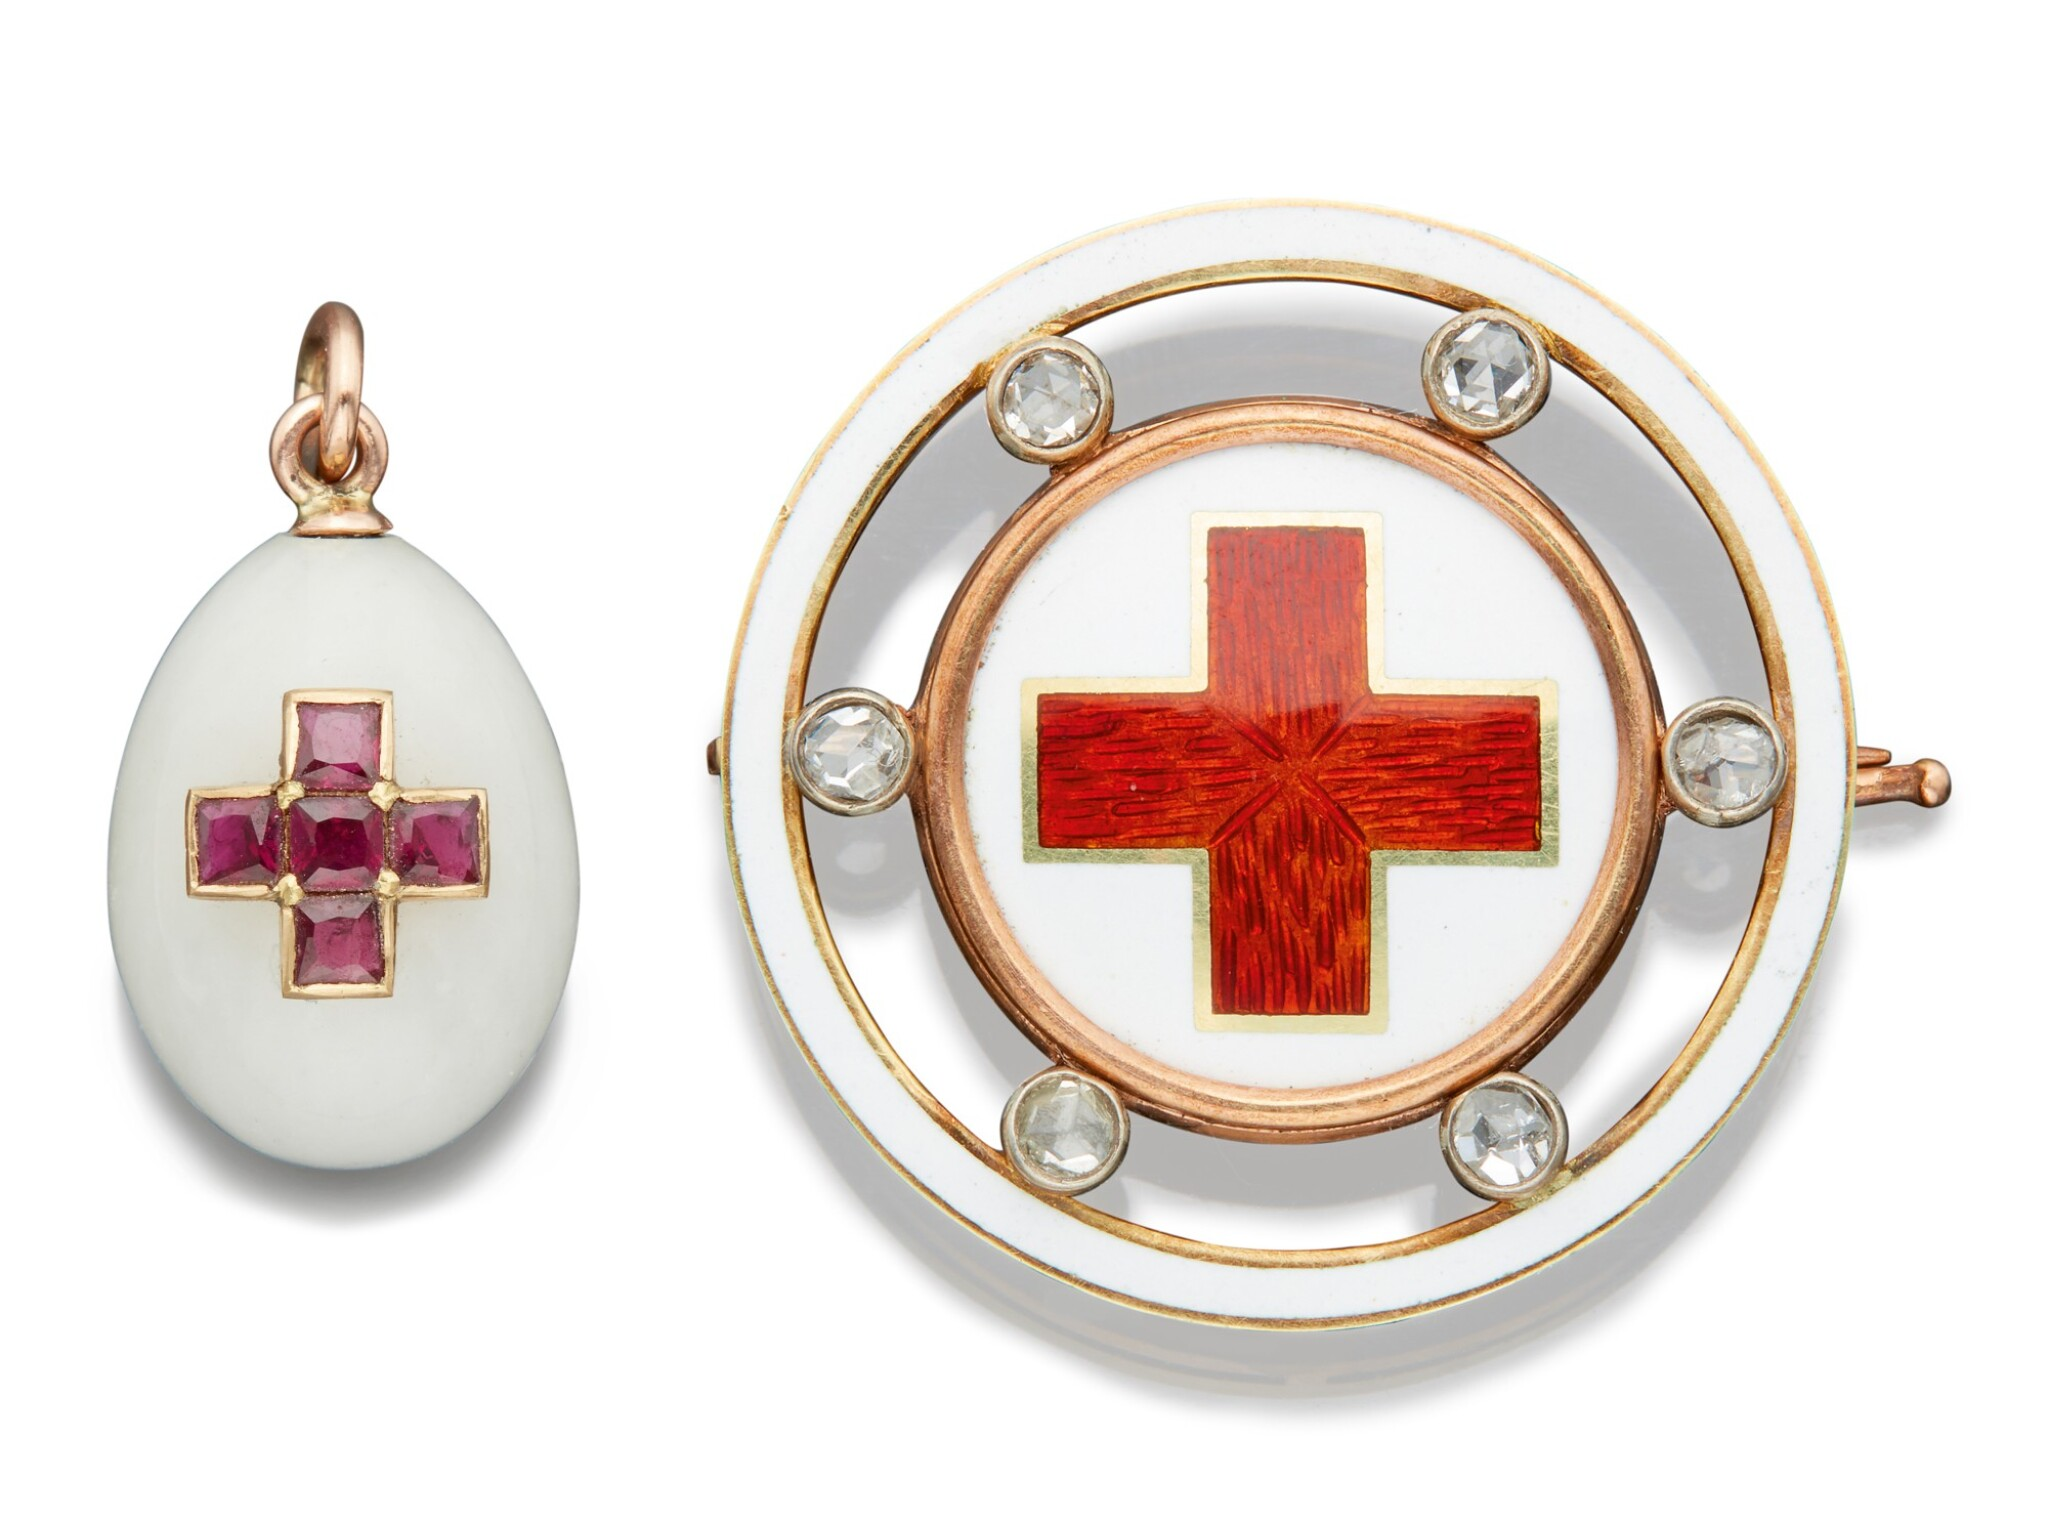 View full screen - View 1 of Lot 62. A FABERGÉ GOLD AND JEWELLED HARDSTONE EGG PENDANT AND A JEWELLED GOLD AND ENAMEL RED CROSS BROOCH, THE PENDANT, WORKMASTER MICHAEL PERCHIN, ST PETERSBURG, CIRCA 1890; THE BROOCH, WORKMASTER AUGUST HOLLMING, ST PETERSBURG, 1899-1903.